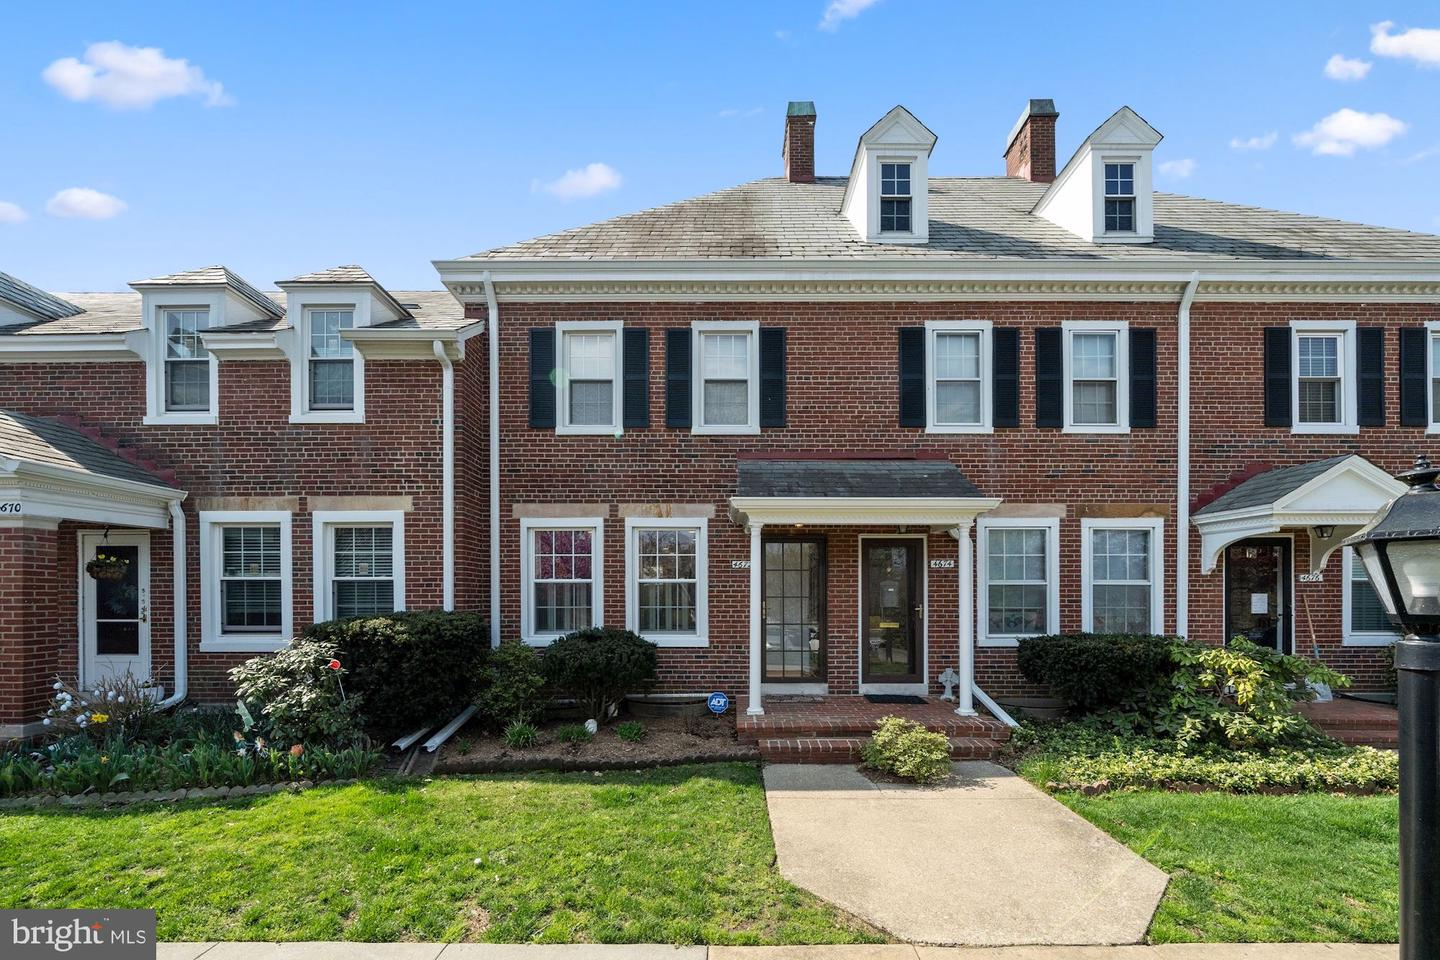 4672 34TH STREET, ARLINGTON, Virginia 22206, 2 Bedrooms Bedrooms, ,2 BathroomsBathrooms,Residential,For Sale,Fairlington Mews,34TH,VAAR179496